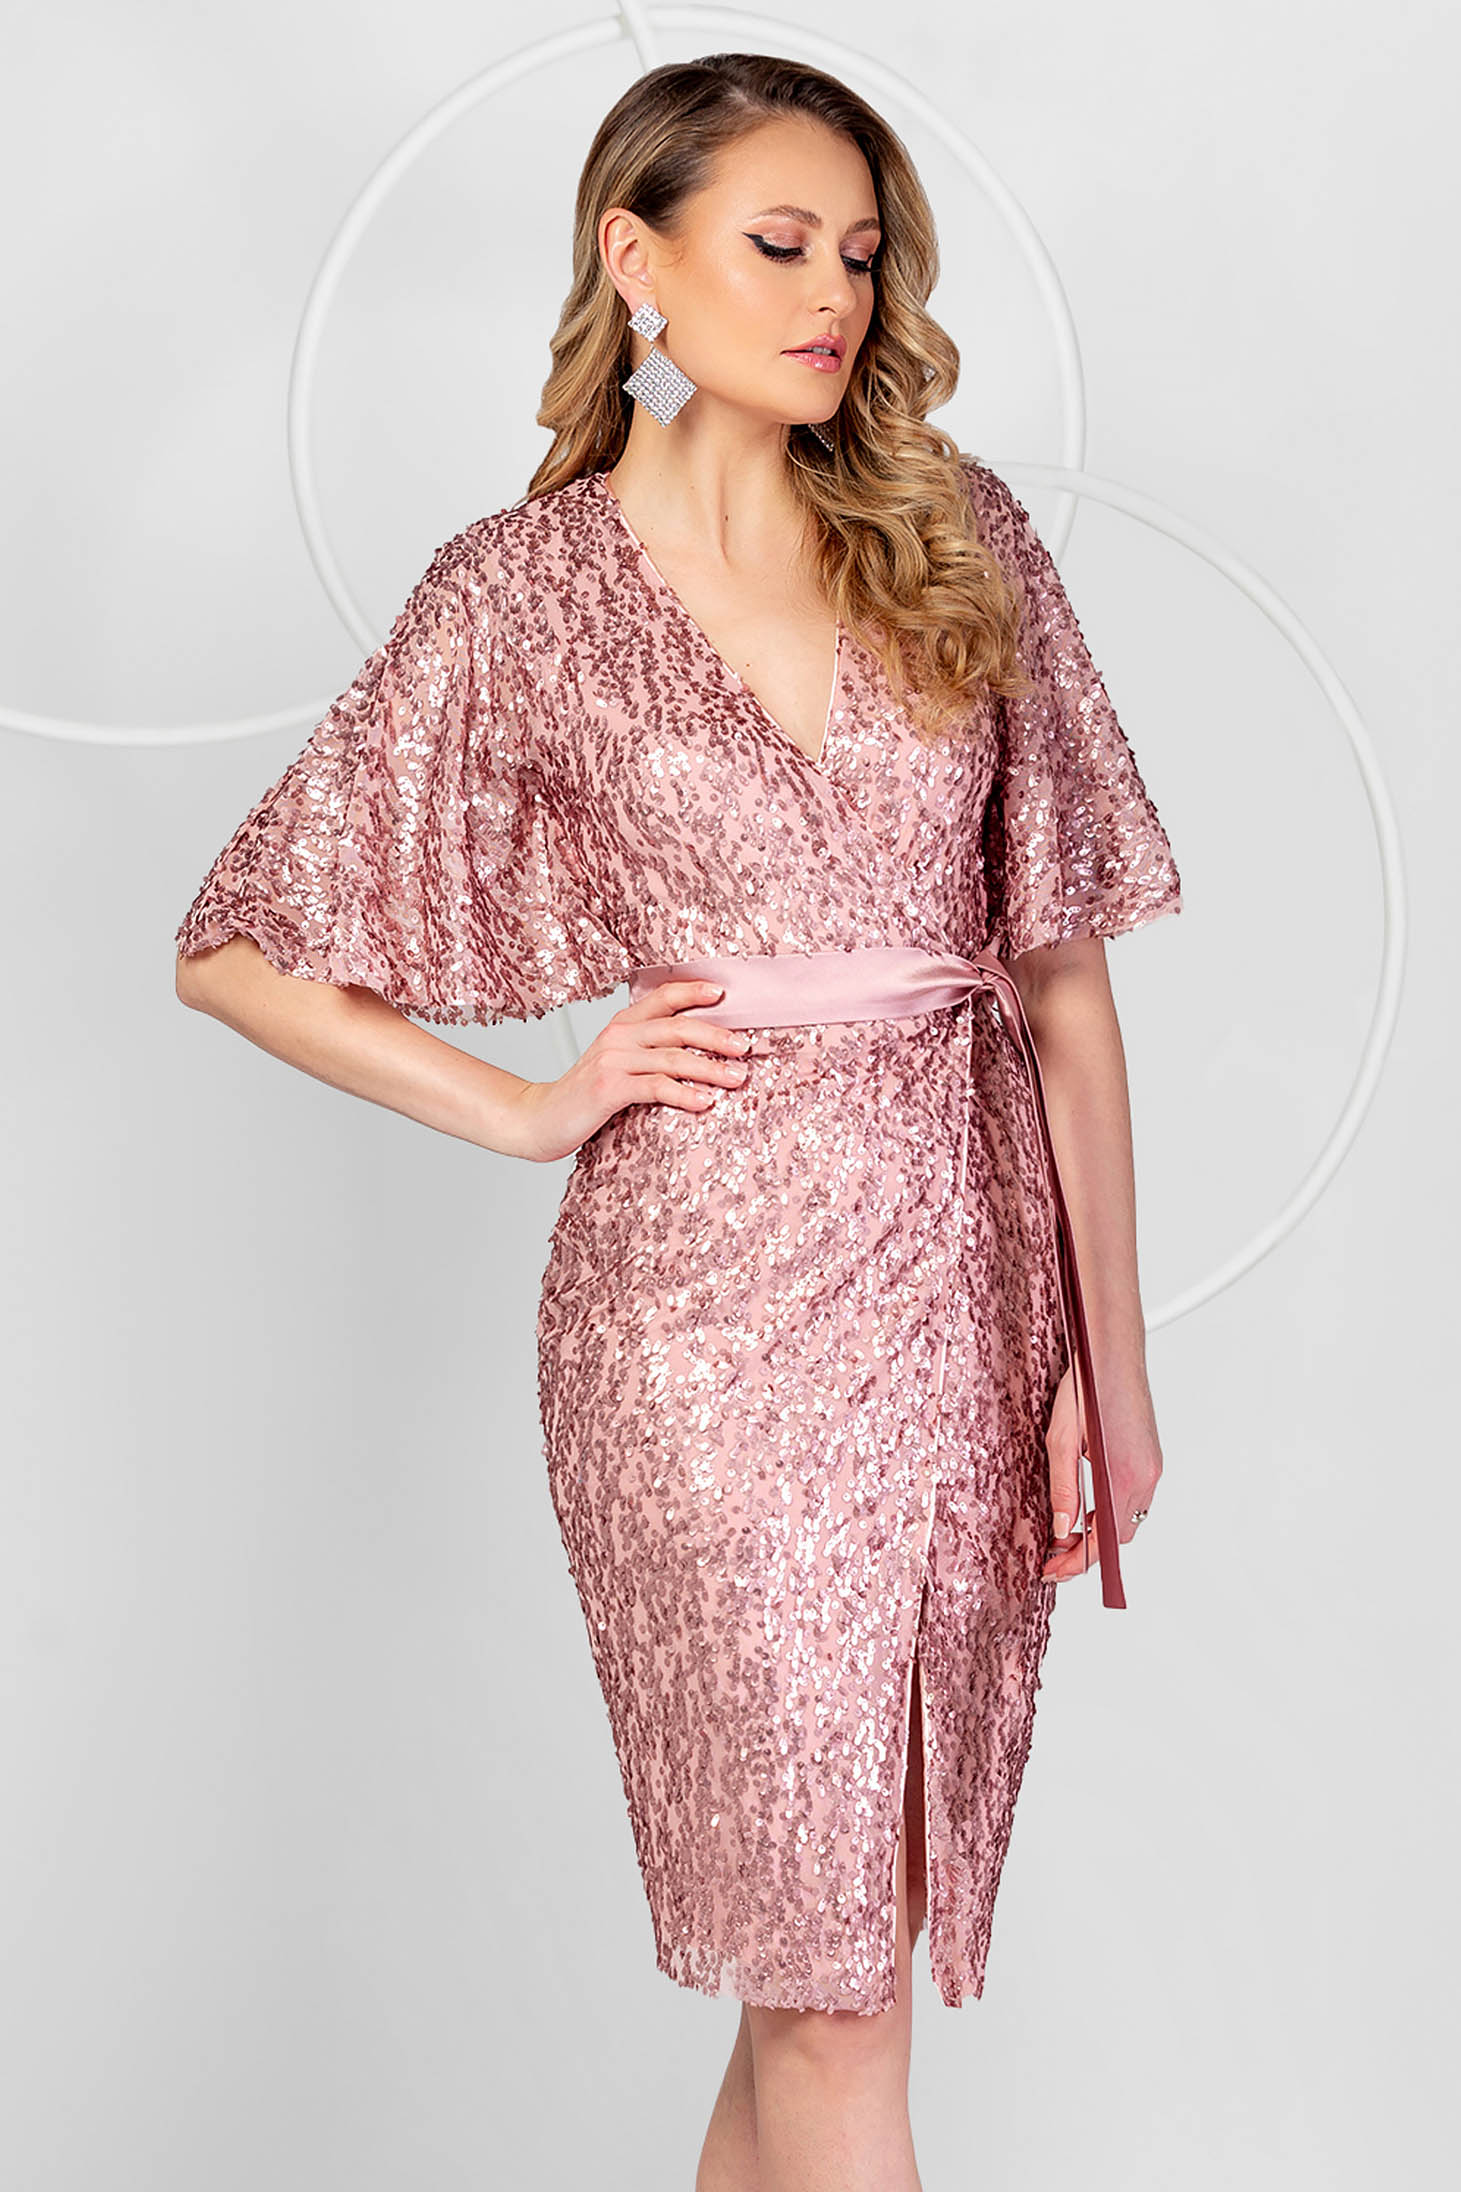 Lightpink dress occasional a-line with sequins with butterfly sleeves